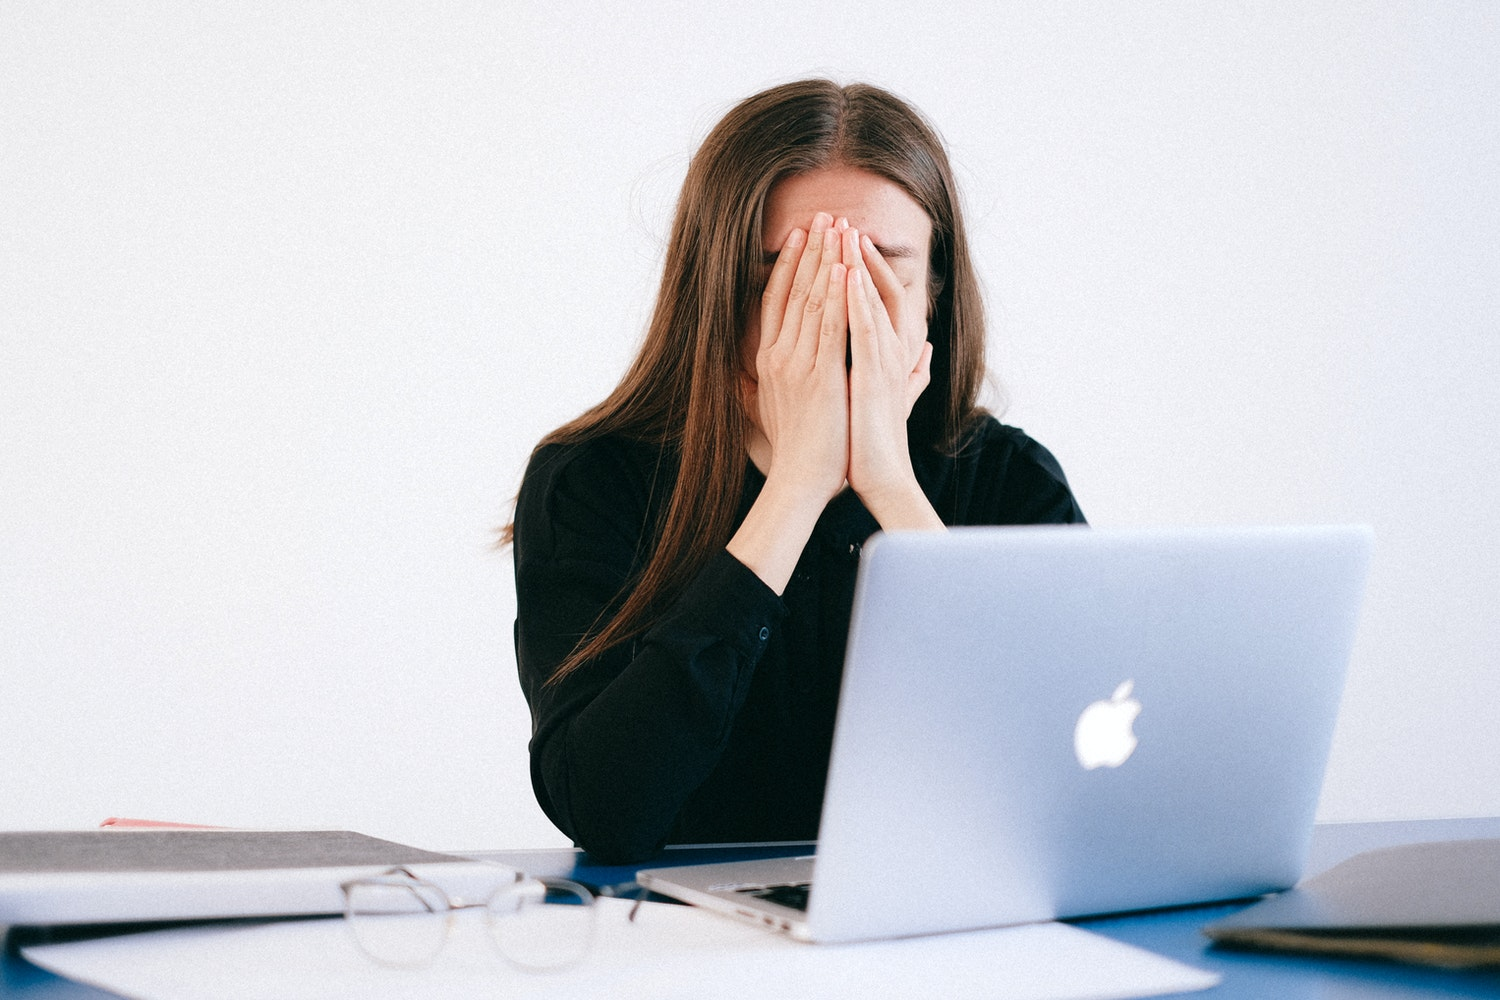 Micro-Stress Management: How To Conquer The Little Workplace Problems